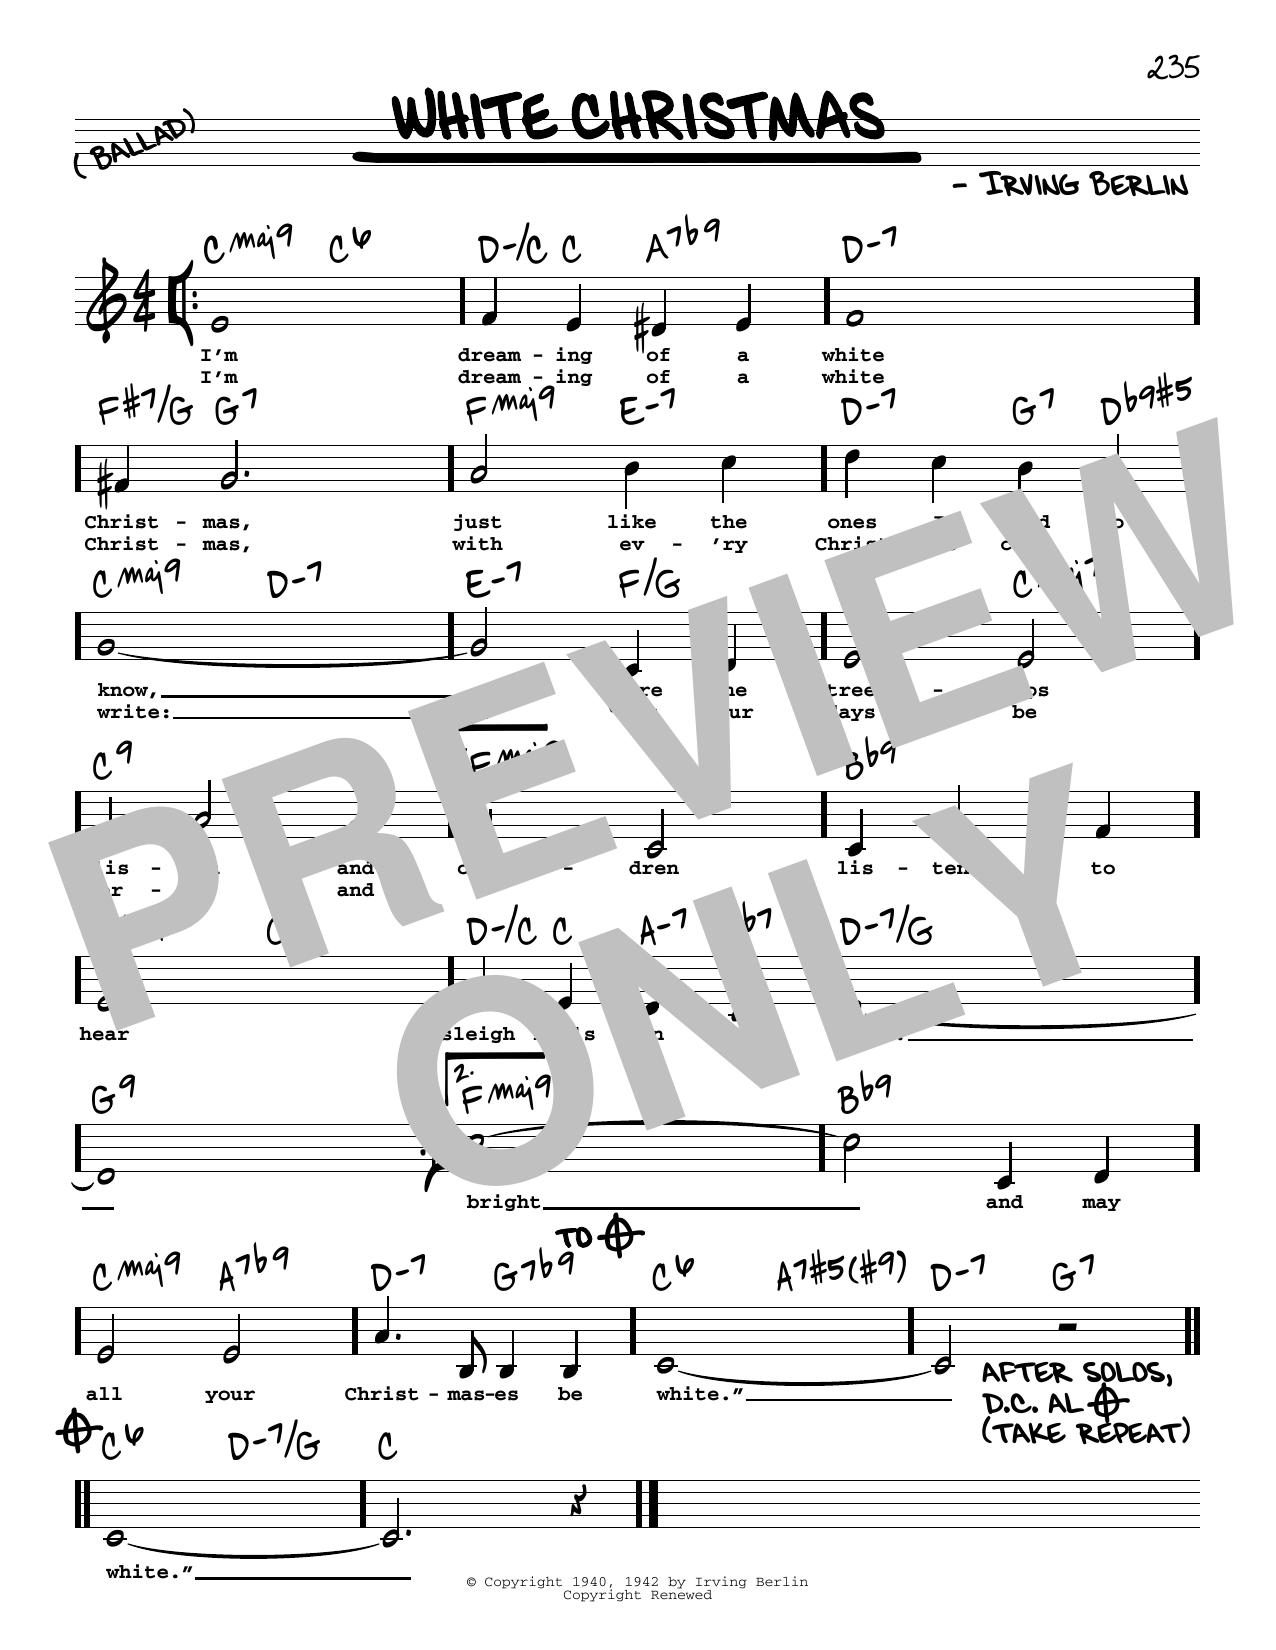 picture regarding Christmas Carol Lyrics Printable Booklet identify Irving Berlin White Xmas Sheet Songs Notes, Chords Obtain Printable Accurate Ebook Melody, Lyrics Chords - SKU: 197863